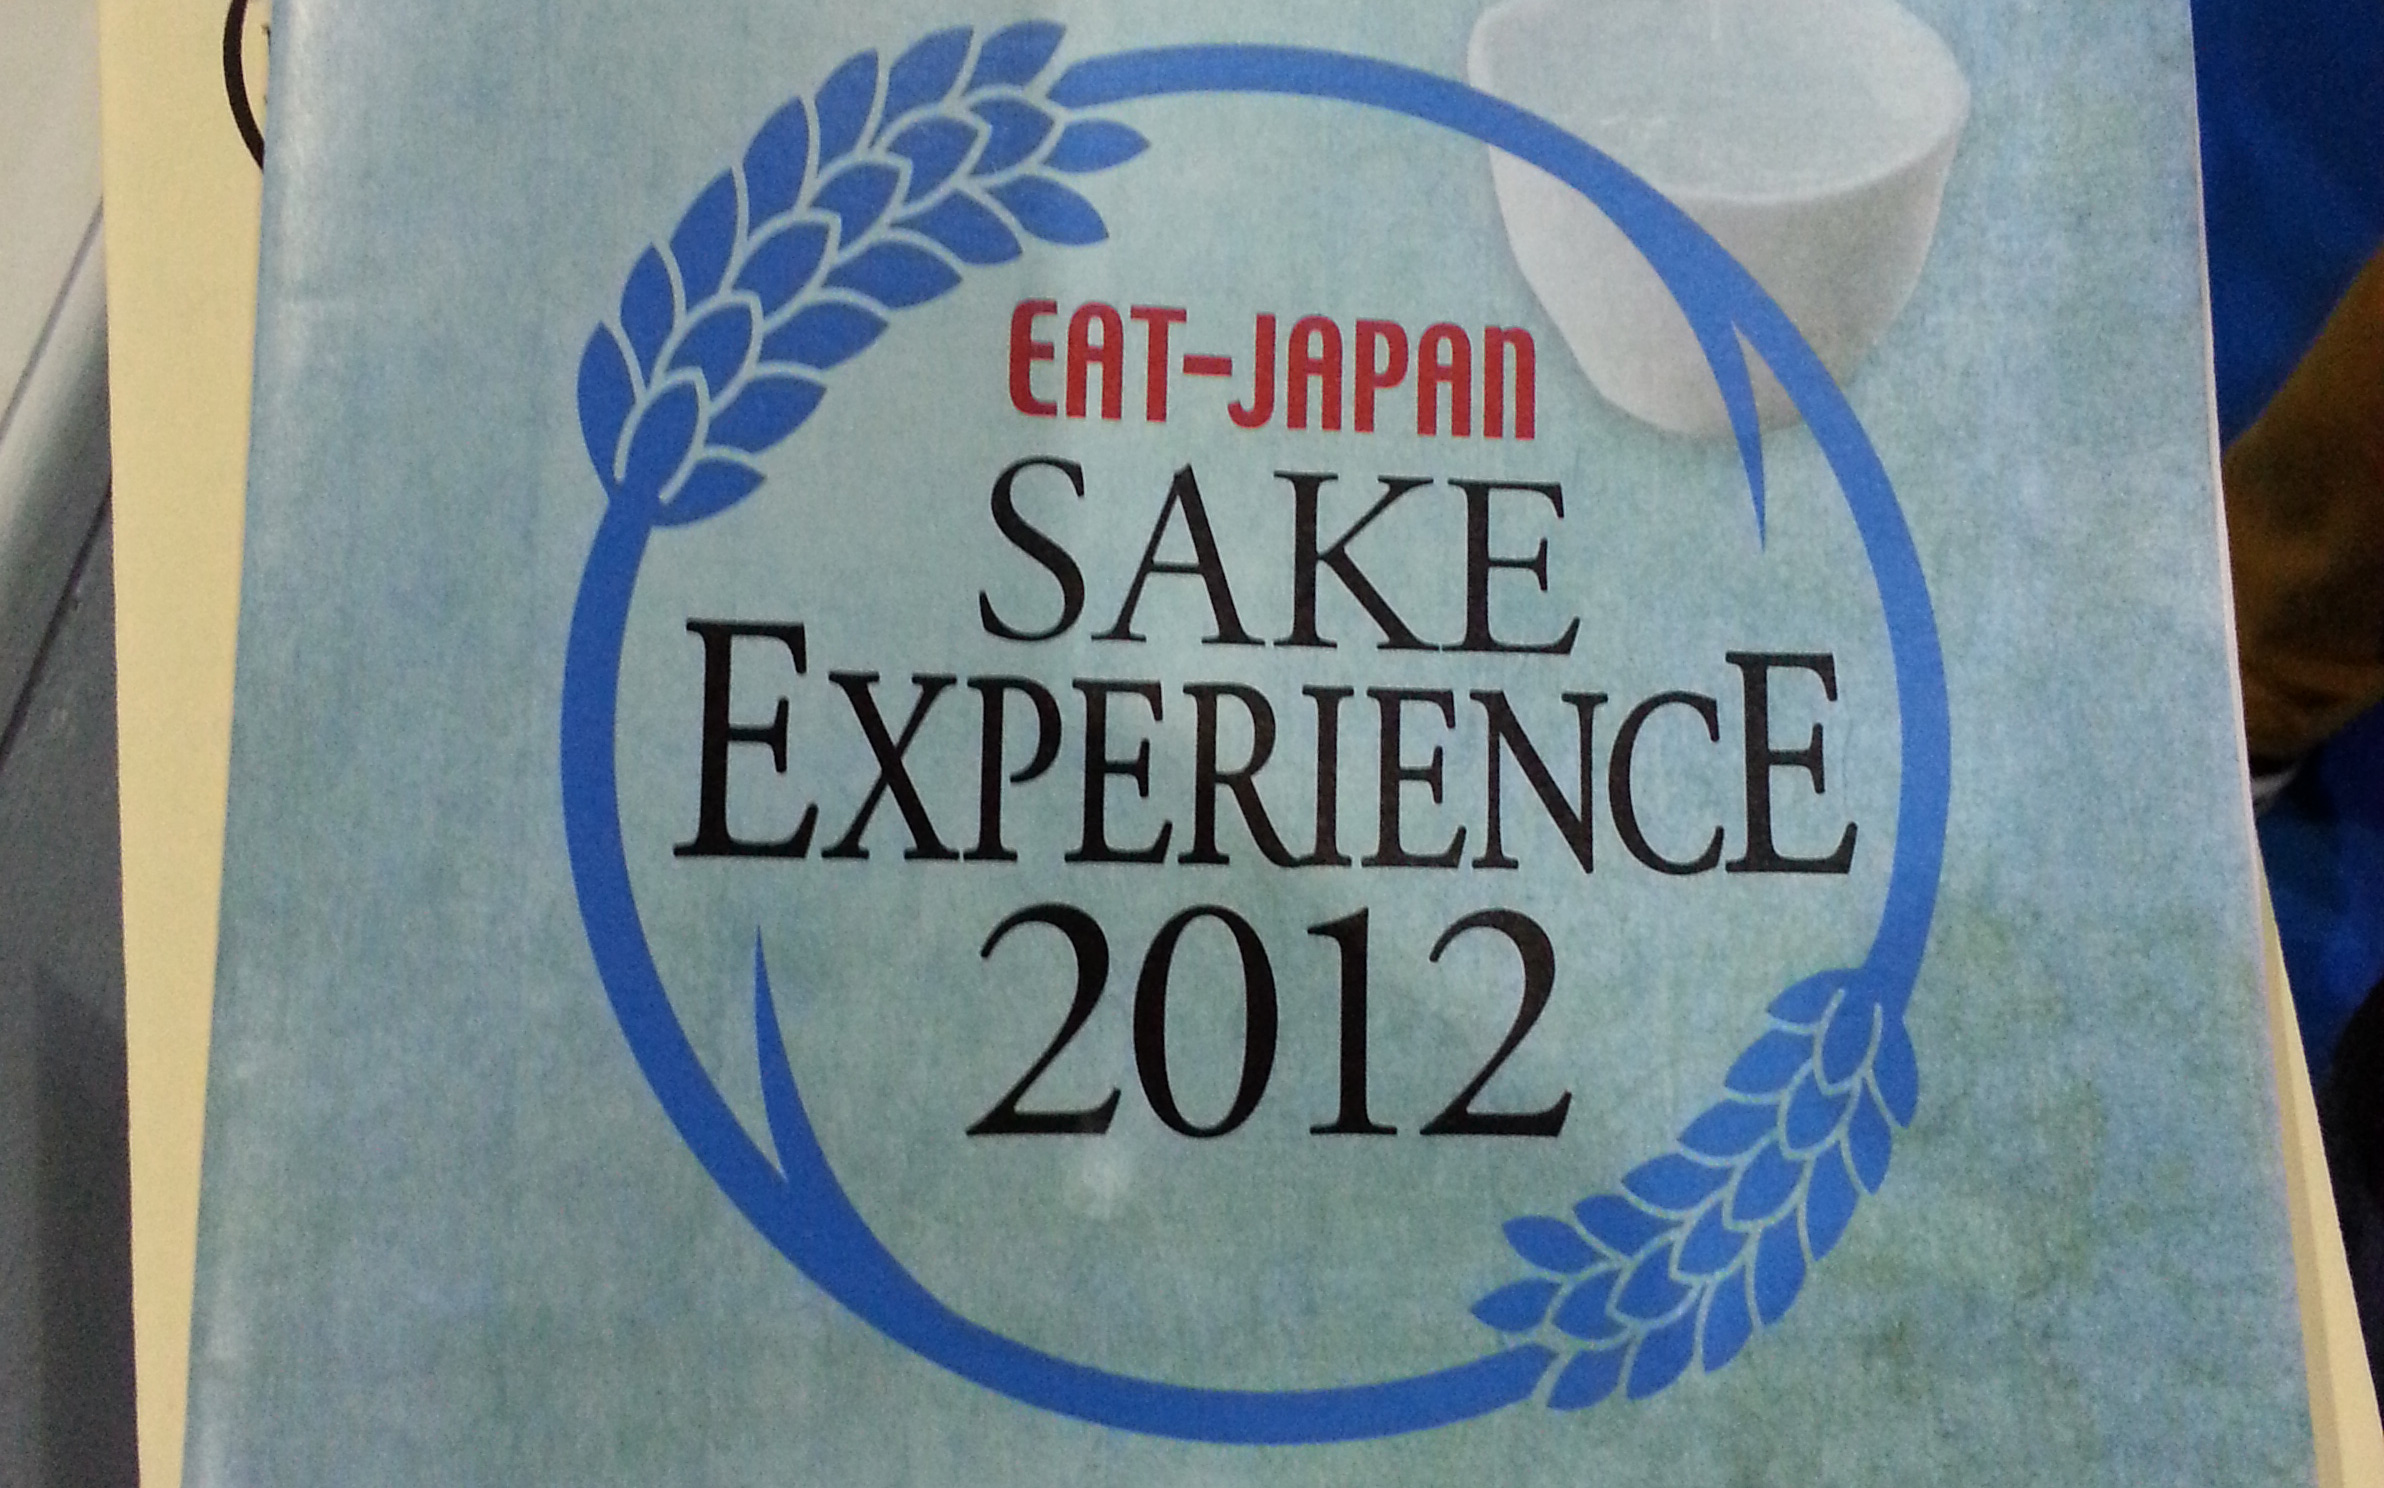 The Sake Experience at Hyper Japan 2012